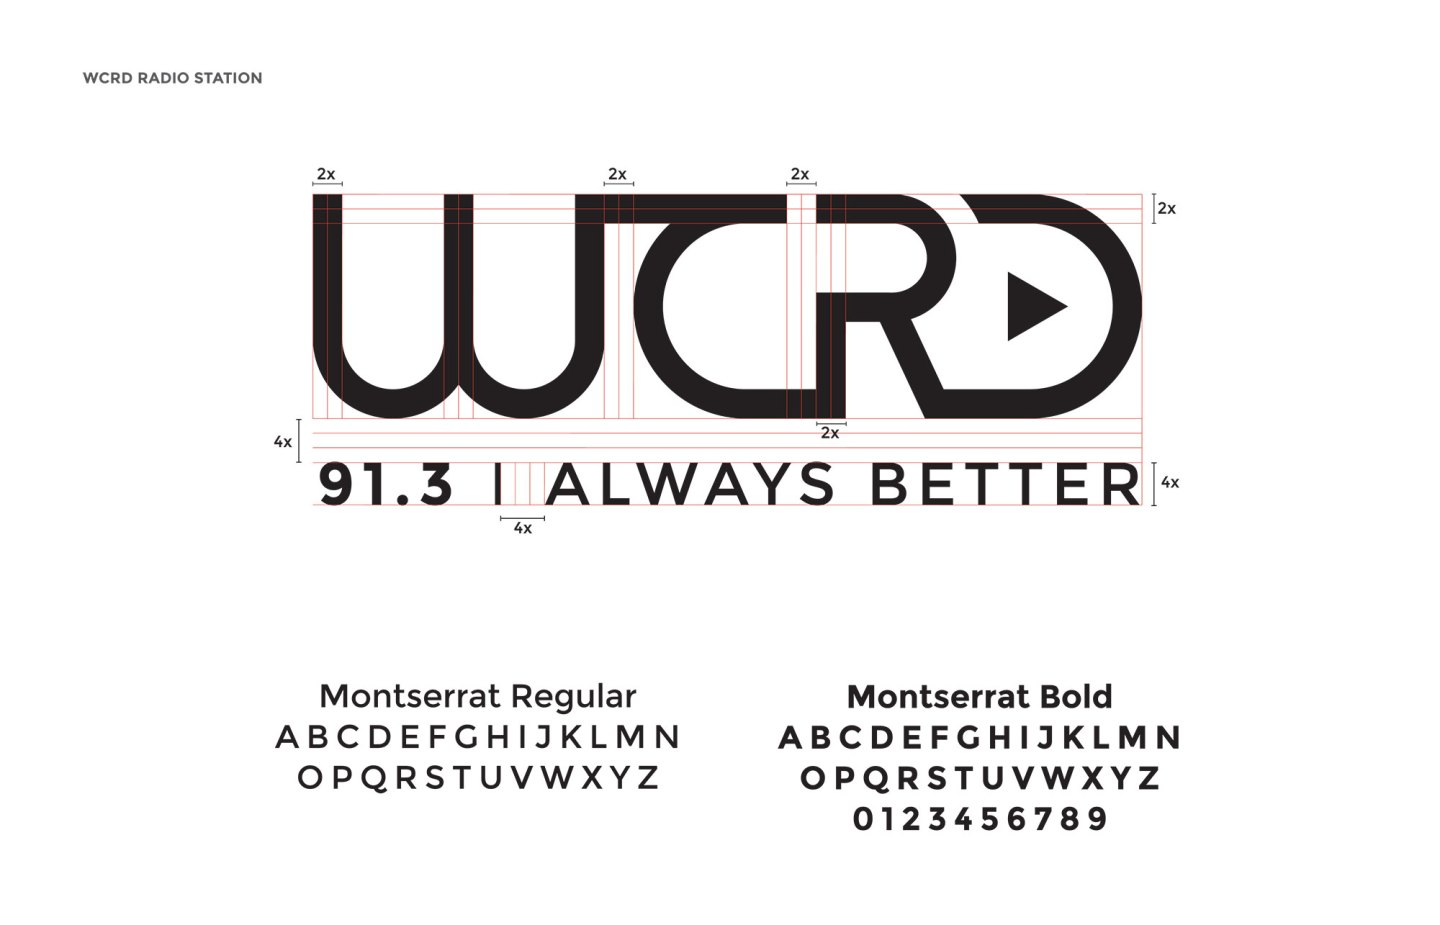 The architecture and typography of the WCRD identity design